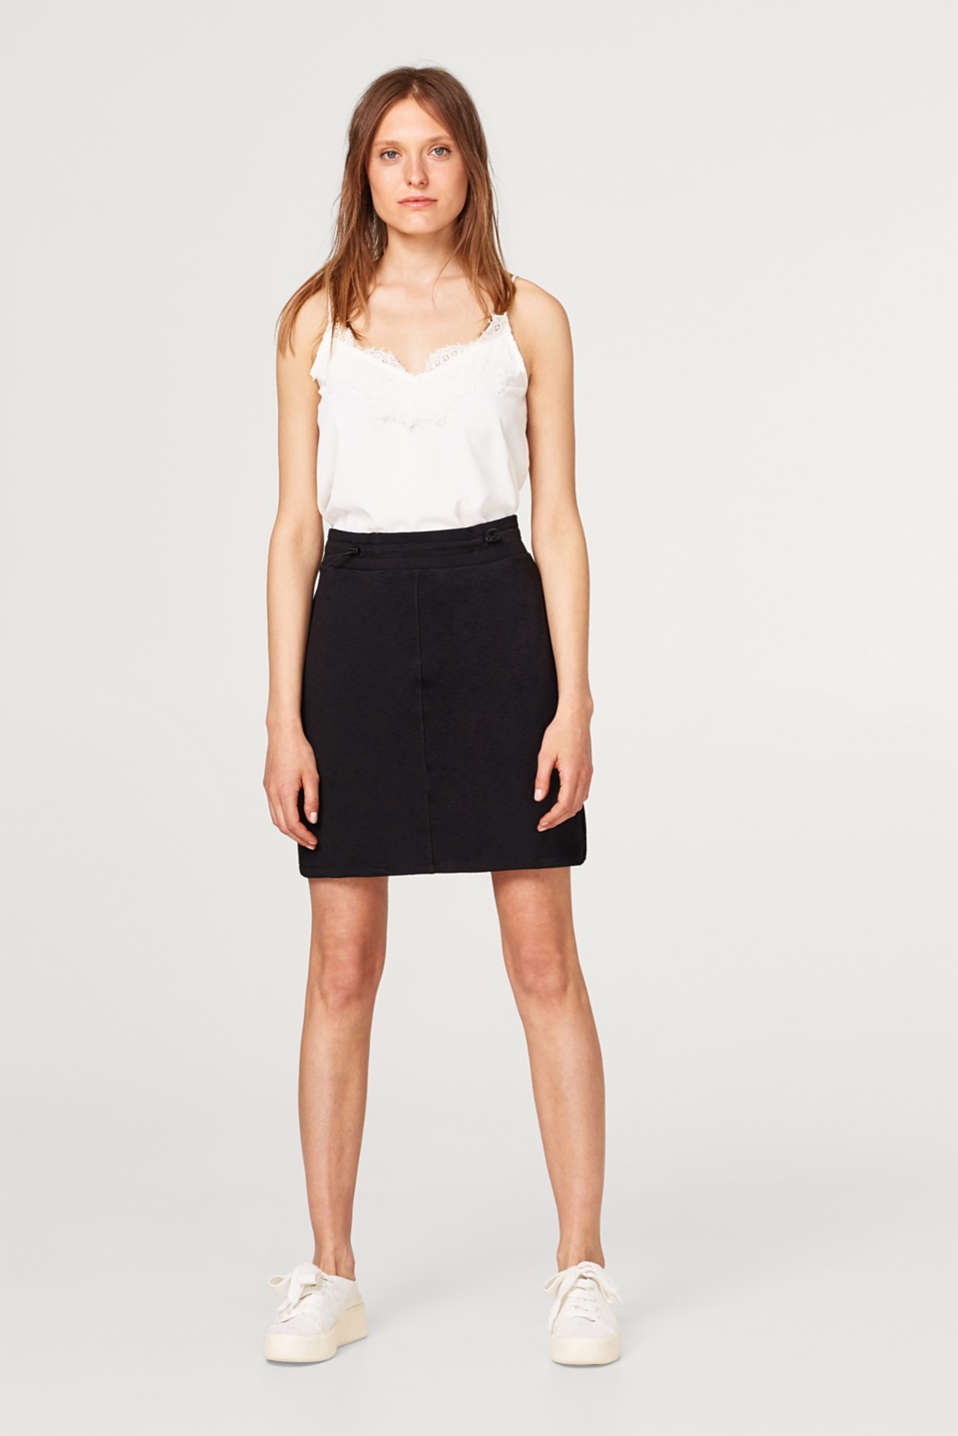 edc - Comfy skirt in sweatshirt fabric with an elasticated waistband